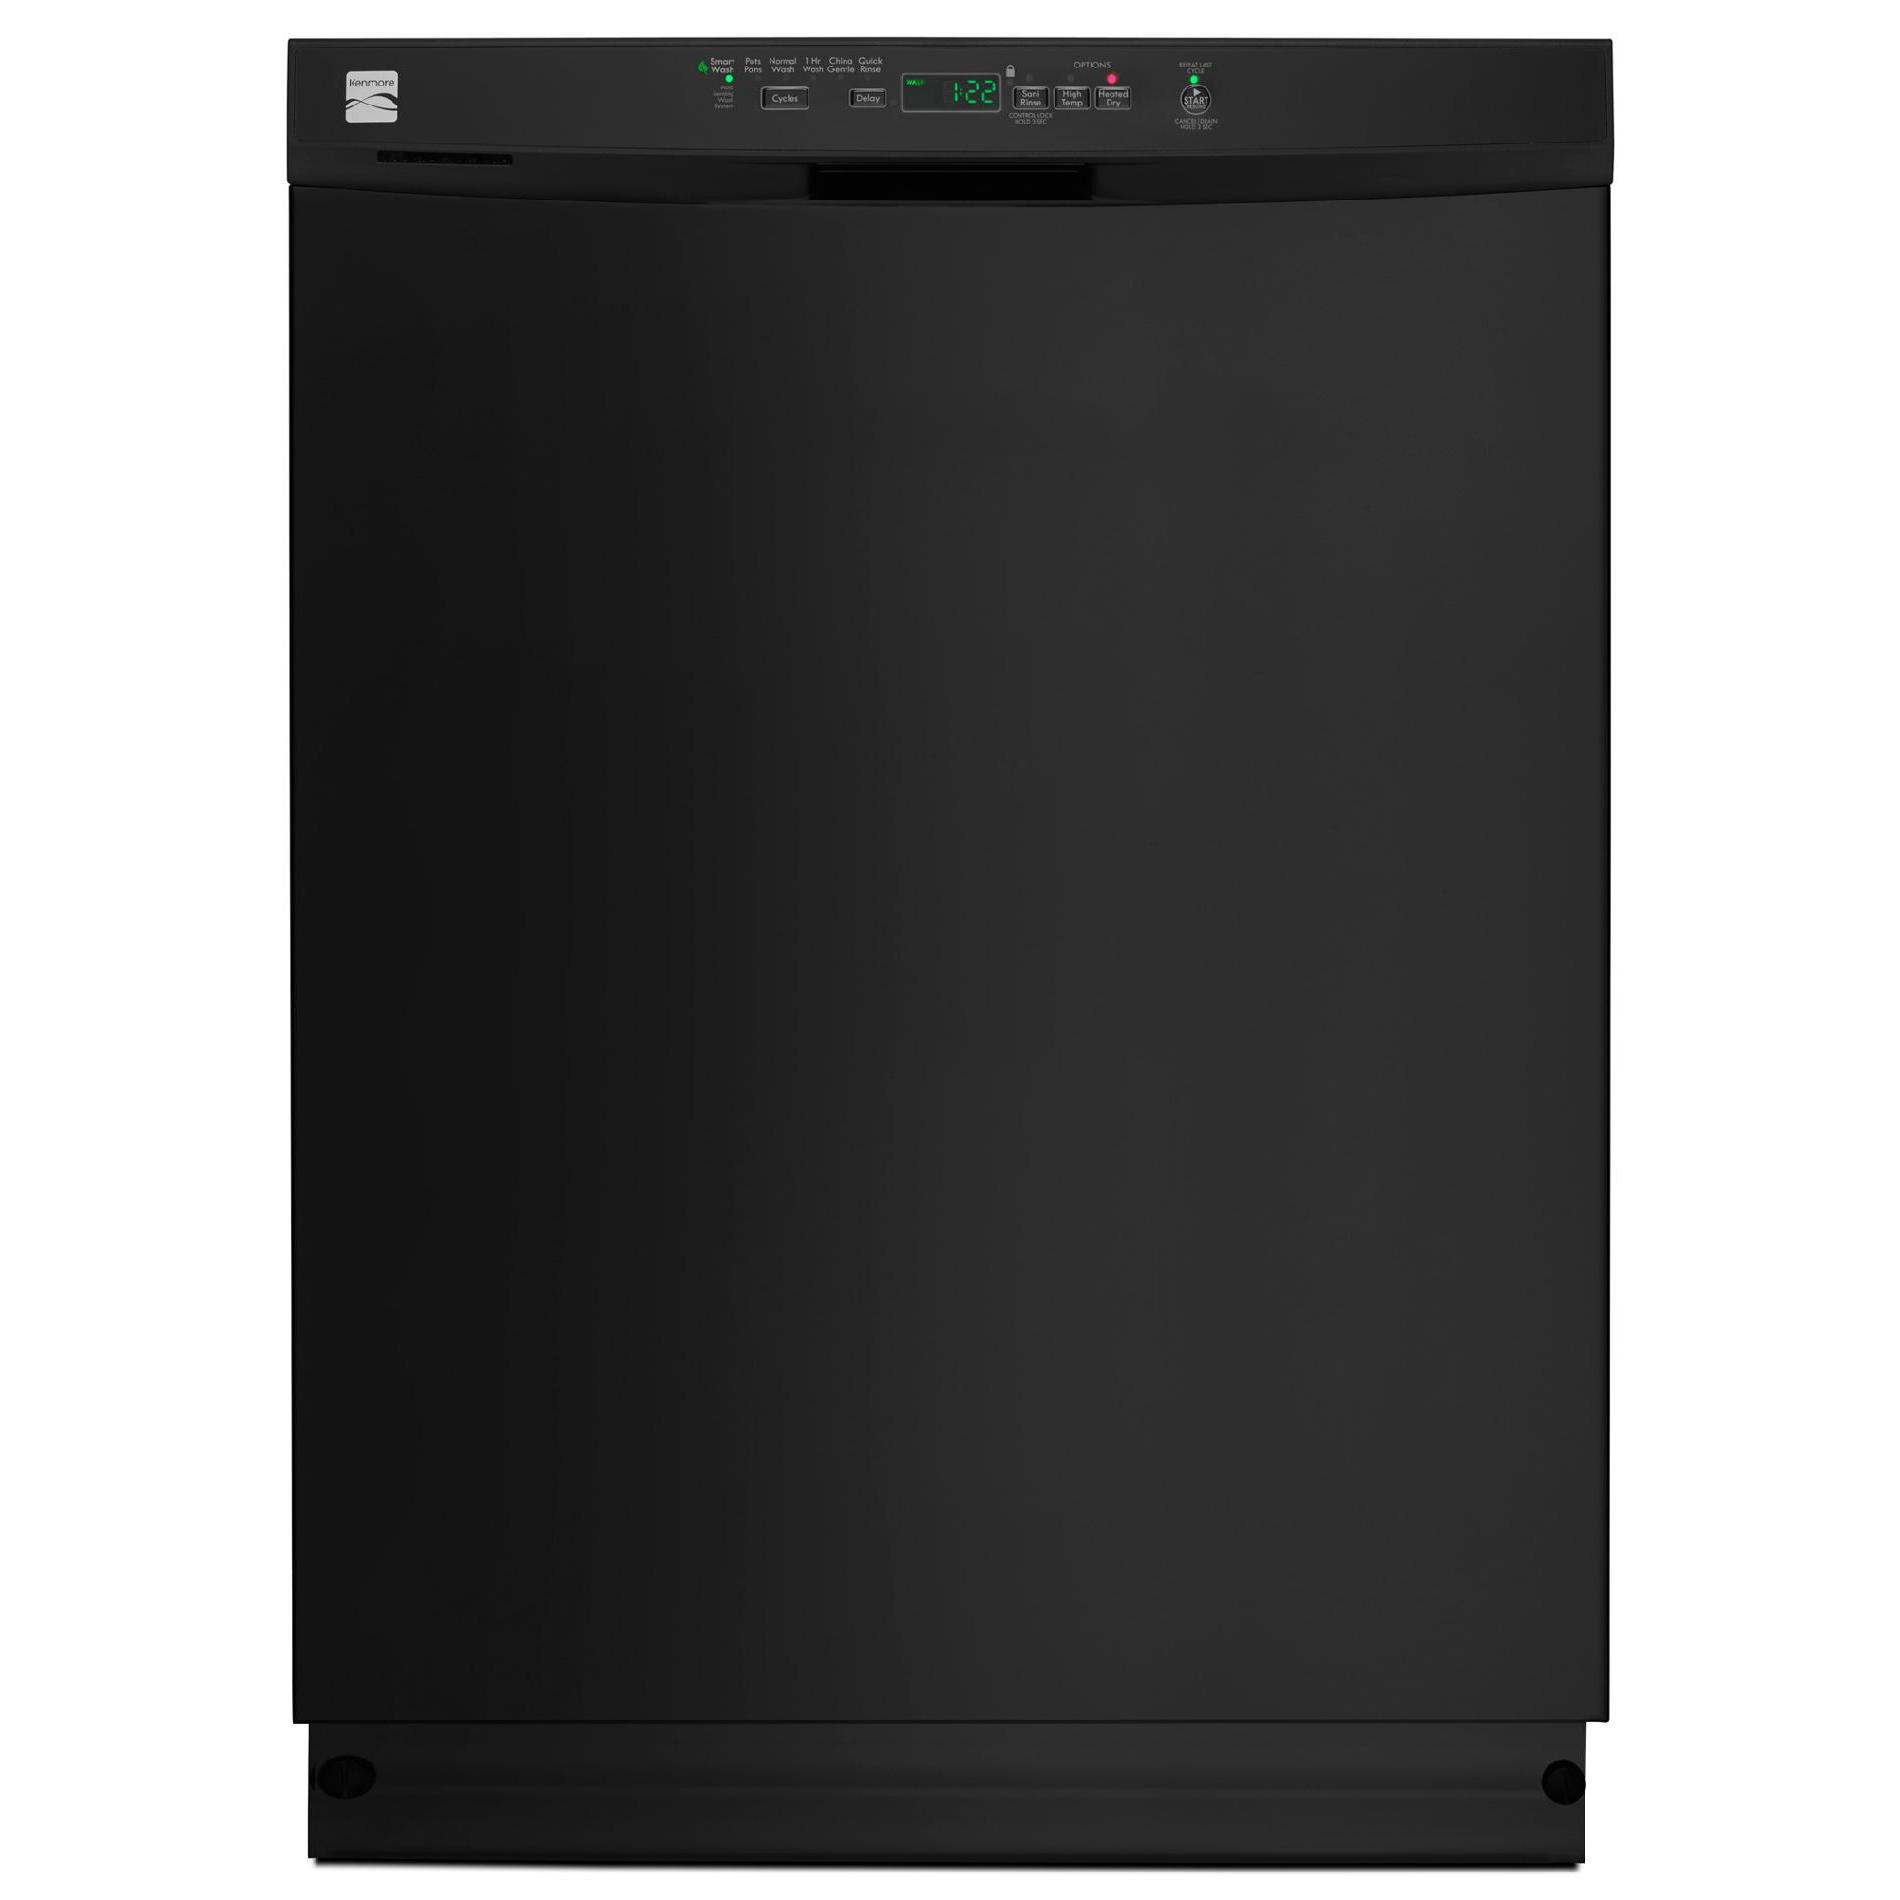 Kenmore 13099 Dishwasher with Power Wave Spray Arm/Nylon Racks - Black Exterior with Grey Plastic Tub at 53 dBa